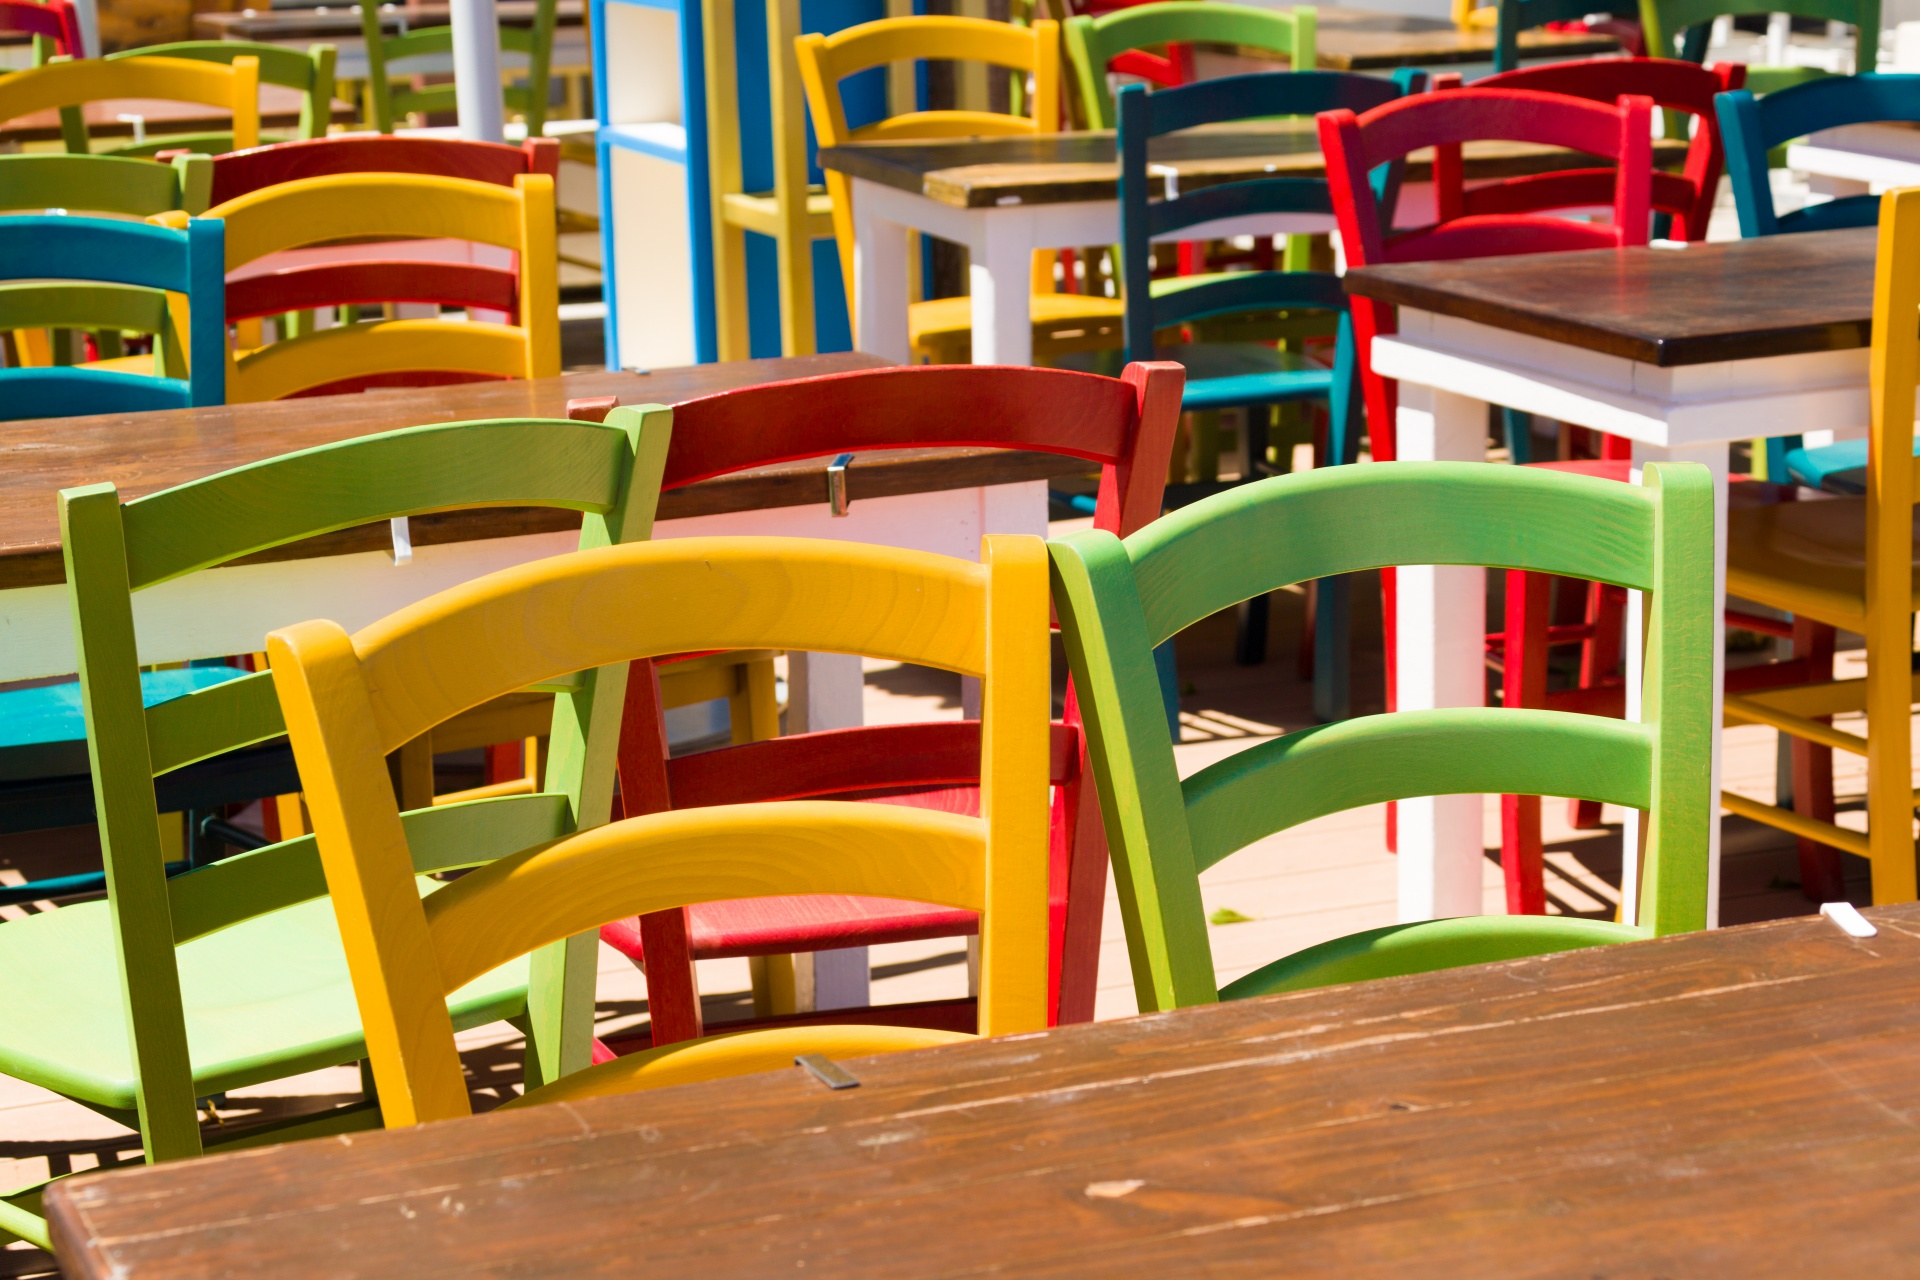 Colorful Wooden Chairs Colorful Wooden Chairs Free Stock Photo Public Domain